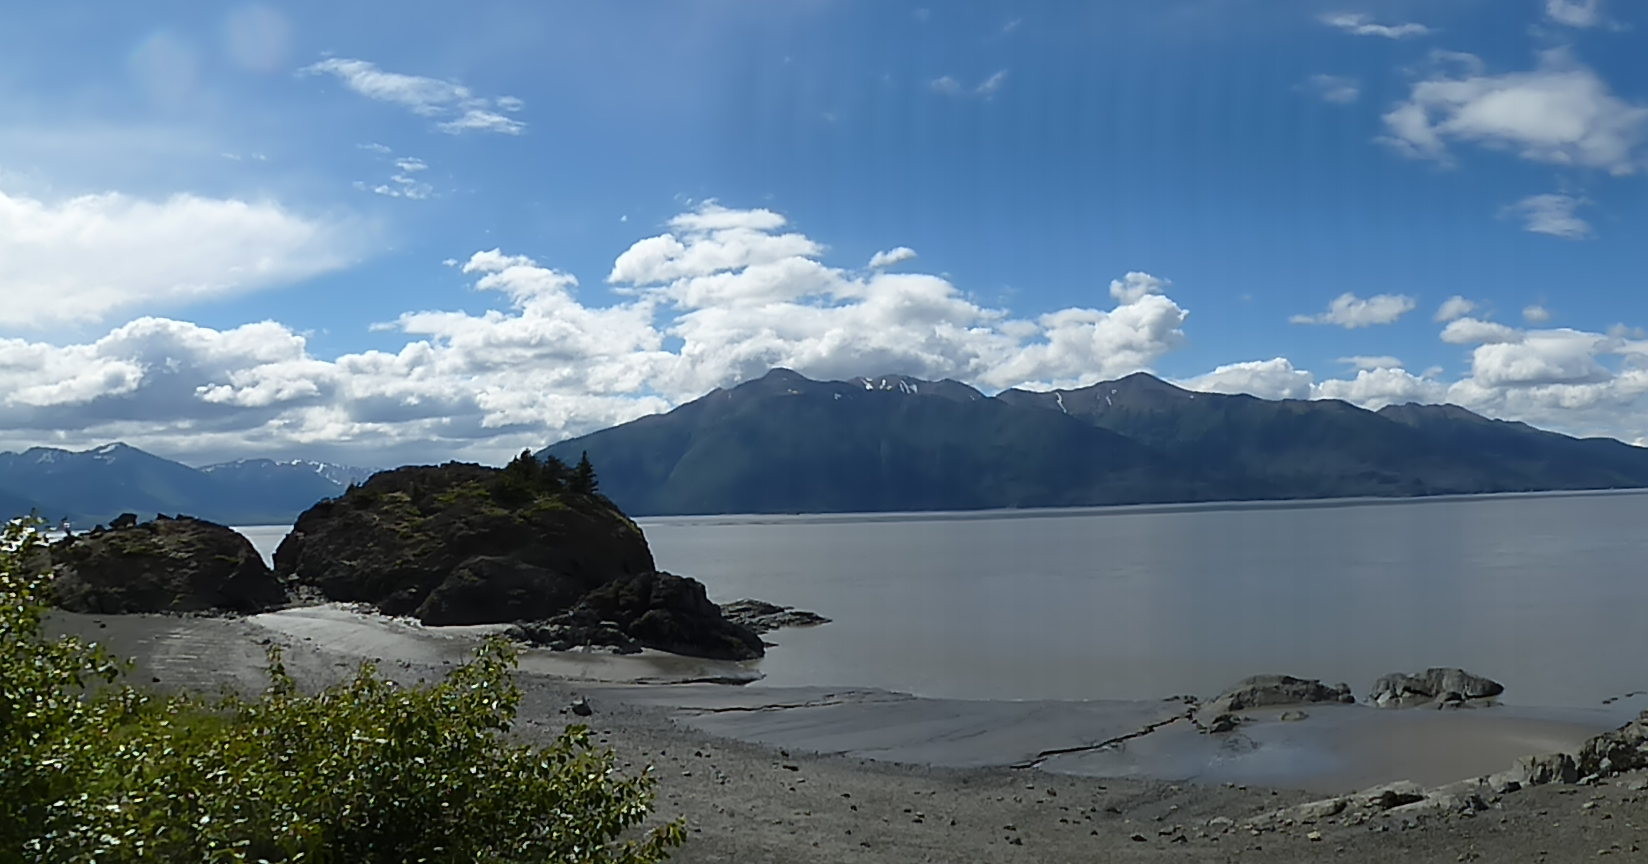 Summer views of the Turnagain Arm as you head toward the Kenai Peninsula.